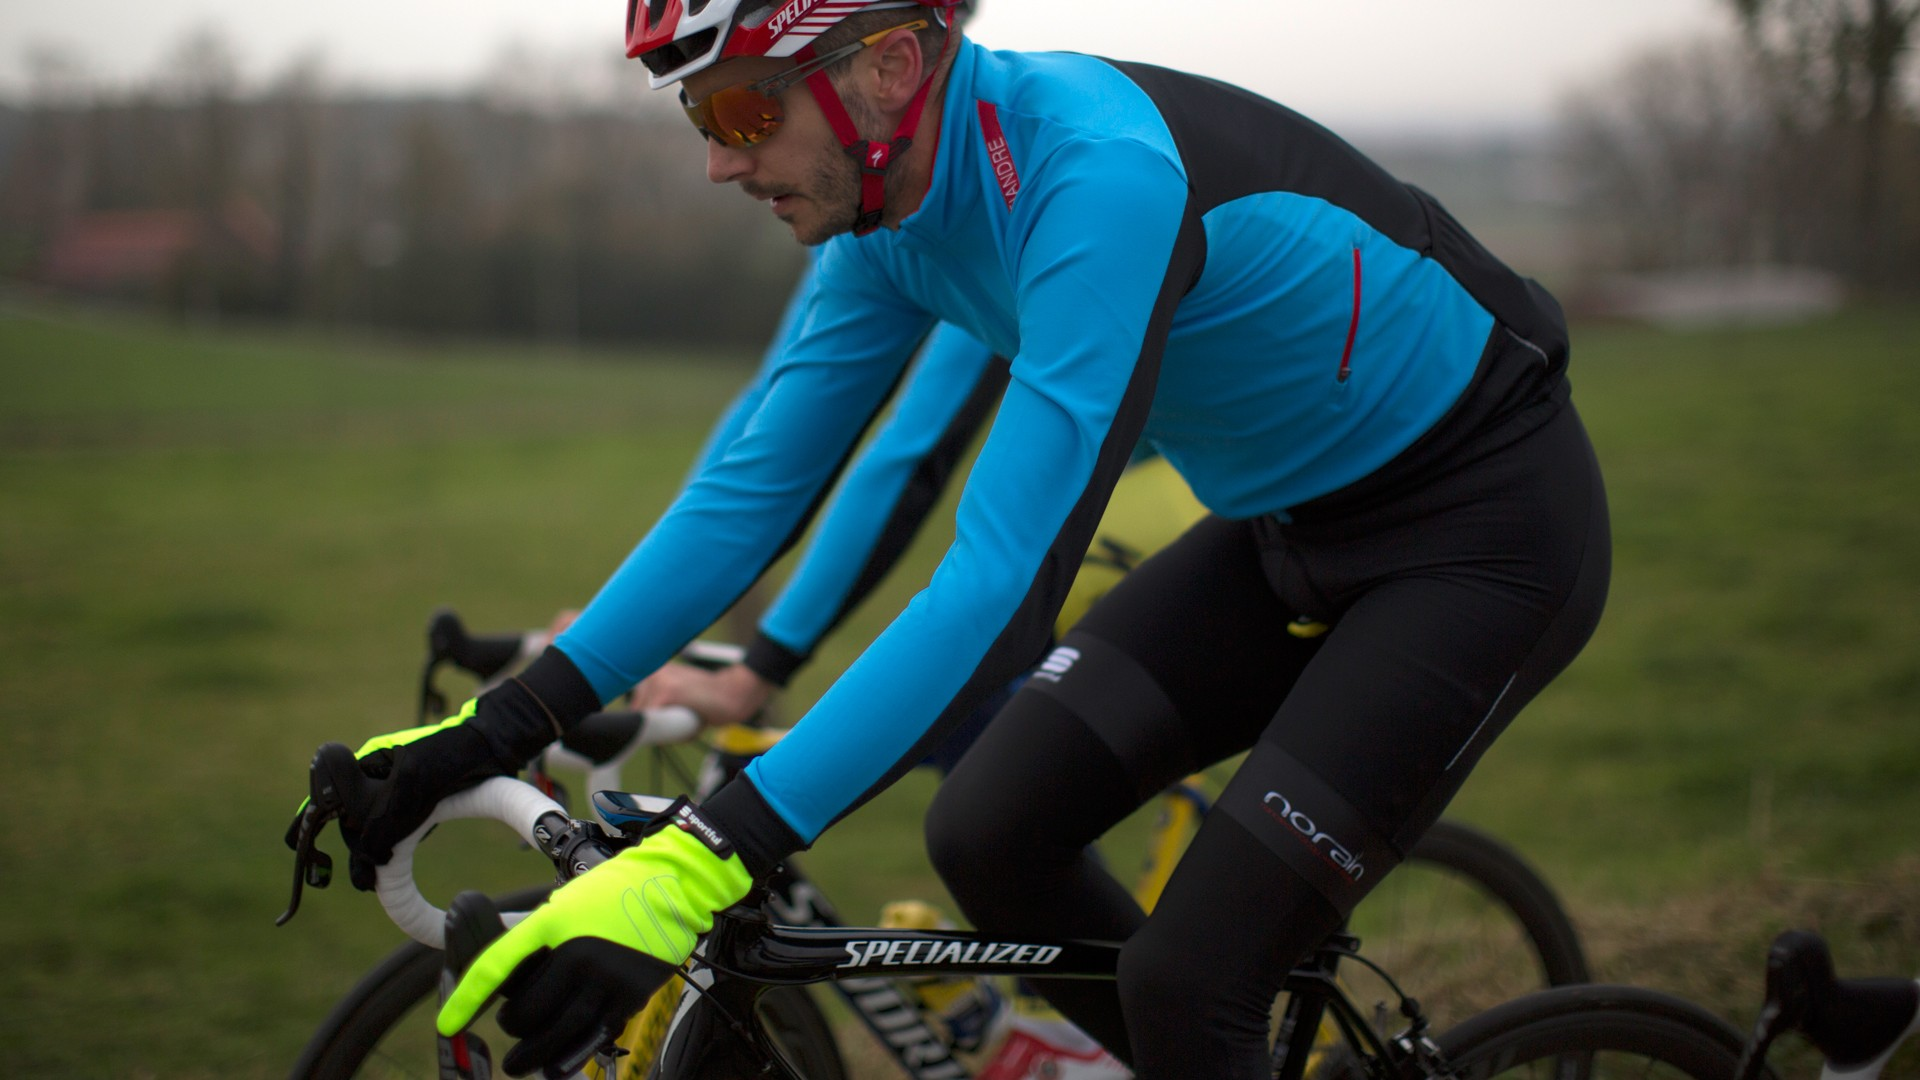 The Fiandre Light Windstopper long-sleeve jersey is designed to be worn over a base layer